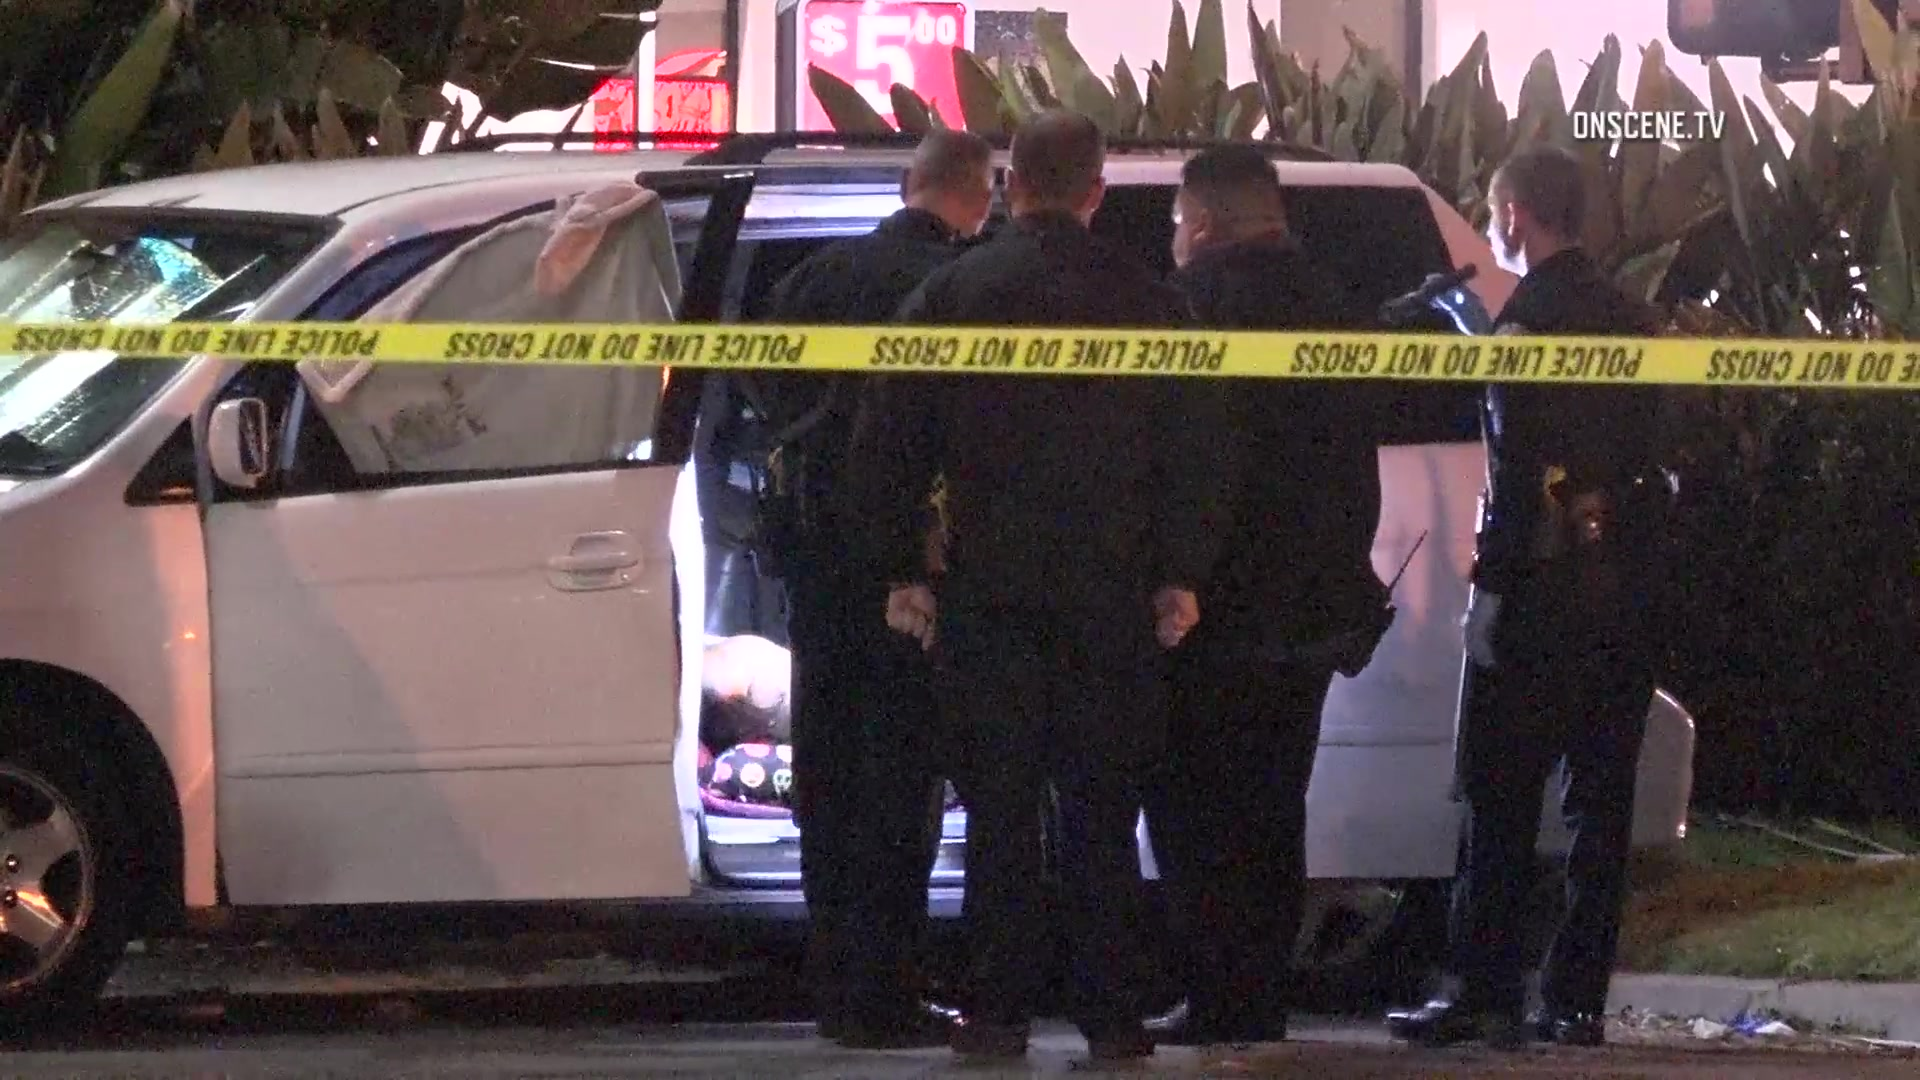 2 young children, 2 adults found dead inside parked van